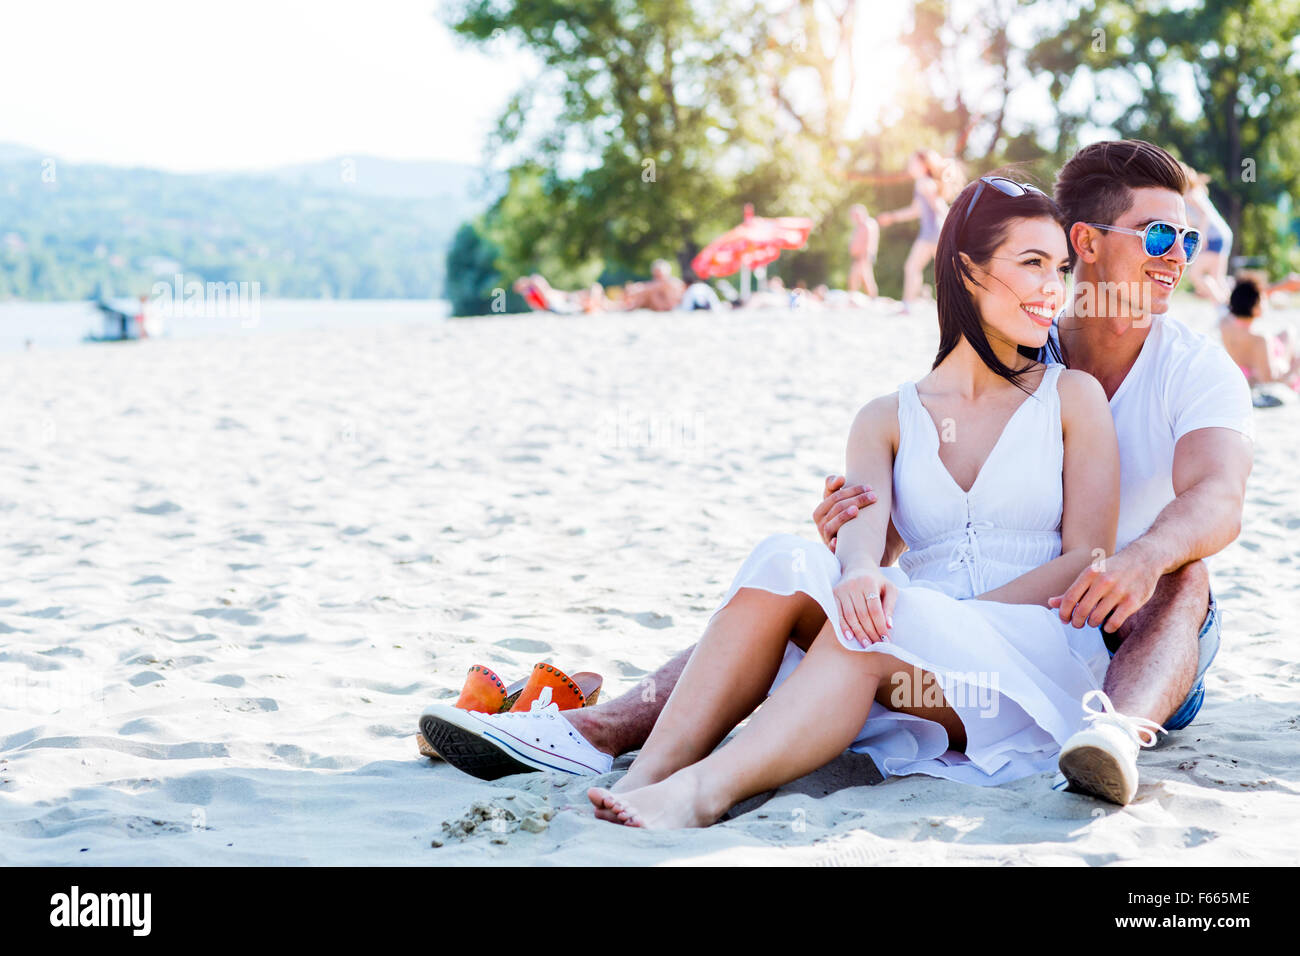 Romantic young couple in love sitting at a sandy beach and smiling - Stock Image